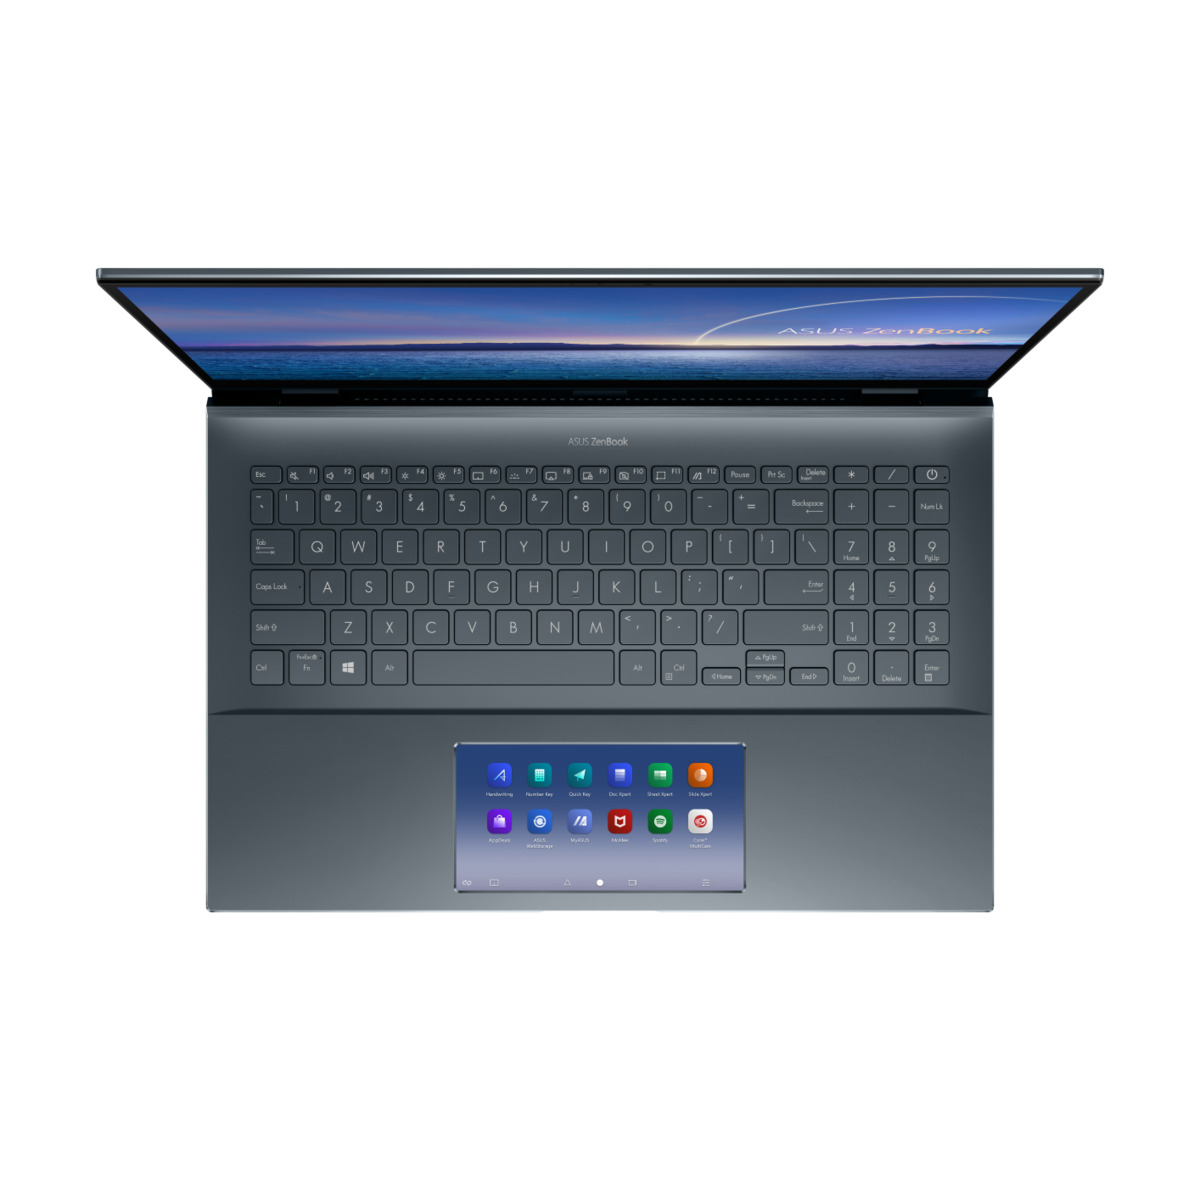 20200905.Asus-unveils-ZenBook-and-Expertbook-laptops-with-OLED-Intel-latest-CPUs-and-more-05.jpg